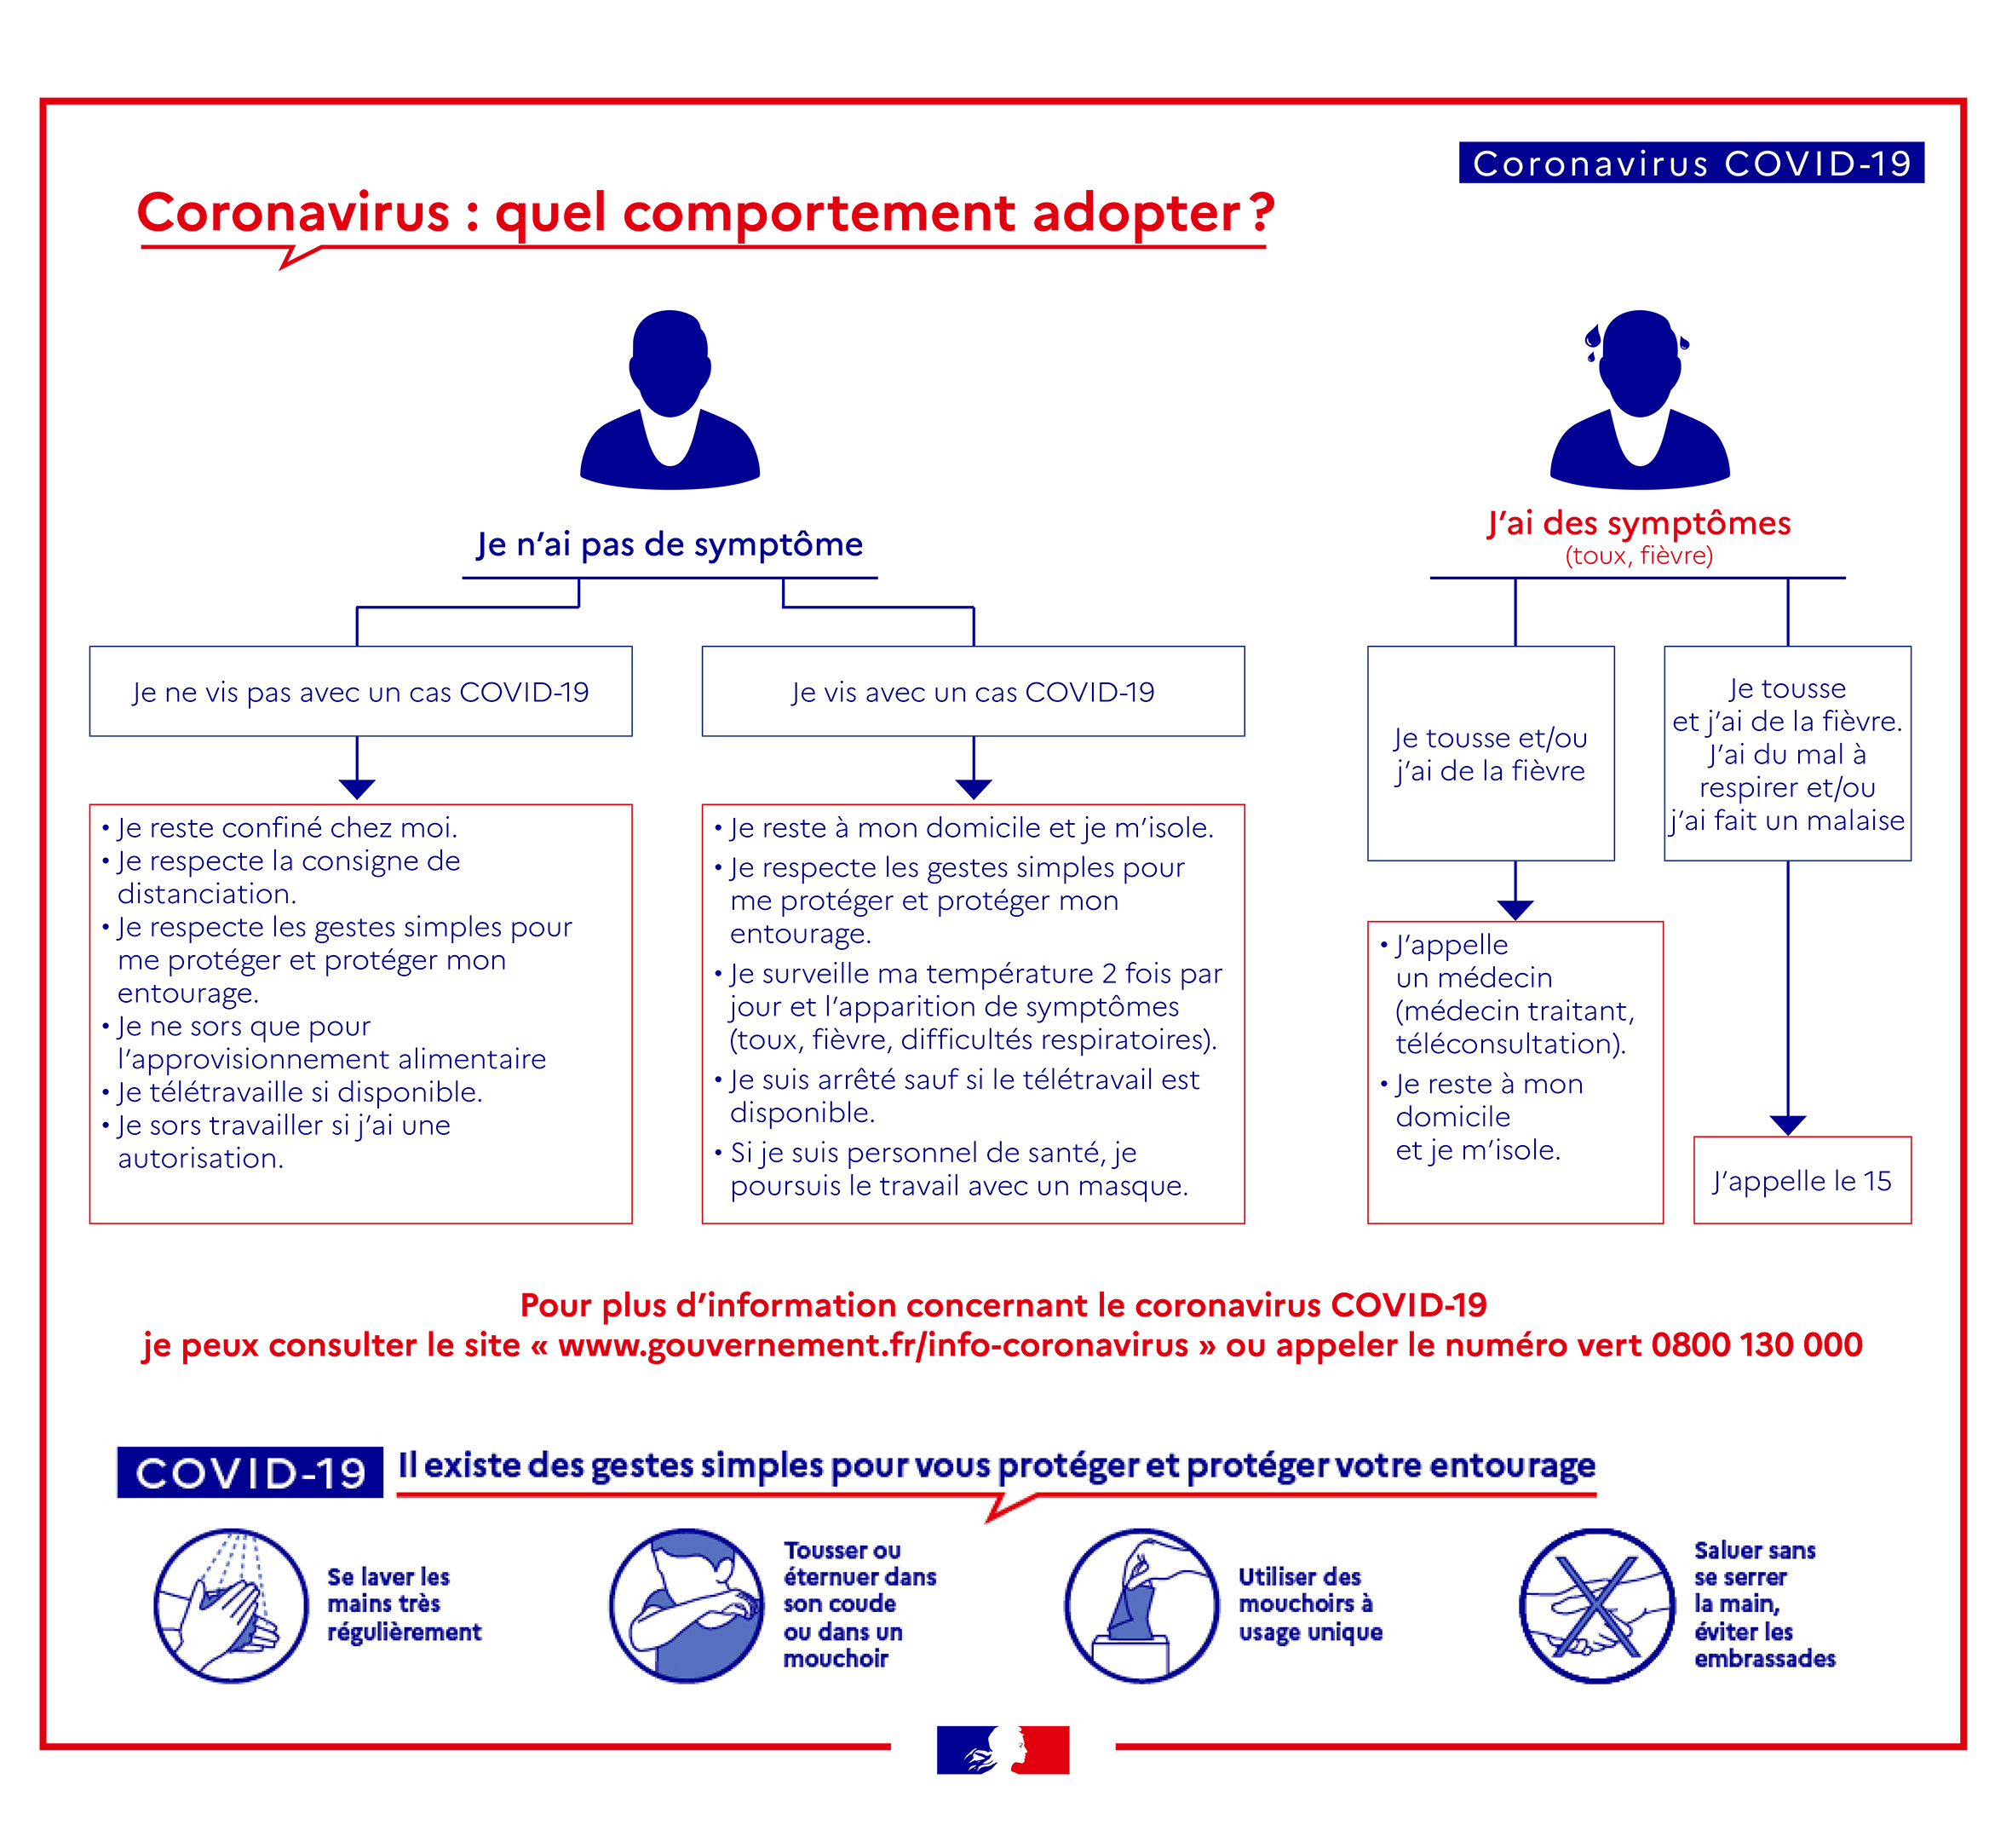 Quel comportement adopter